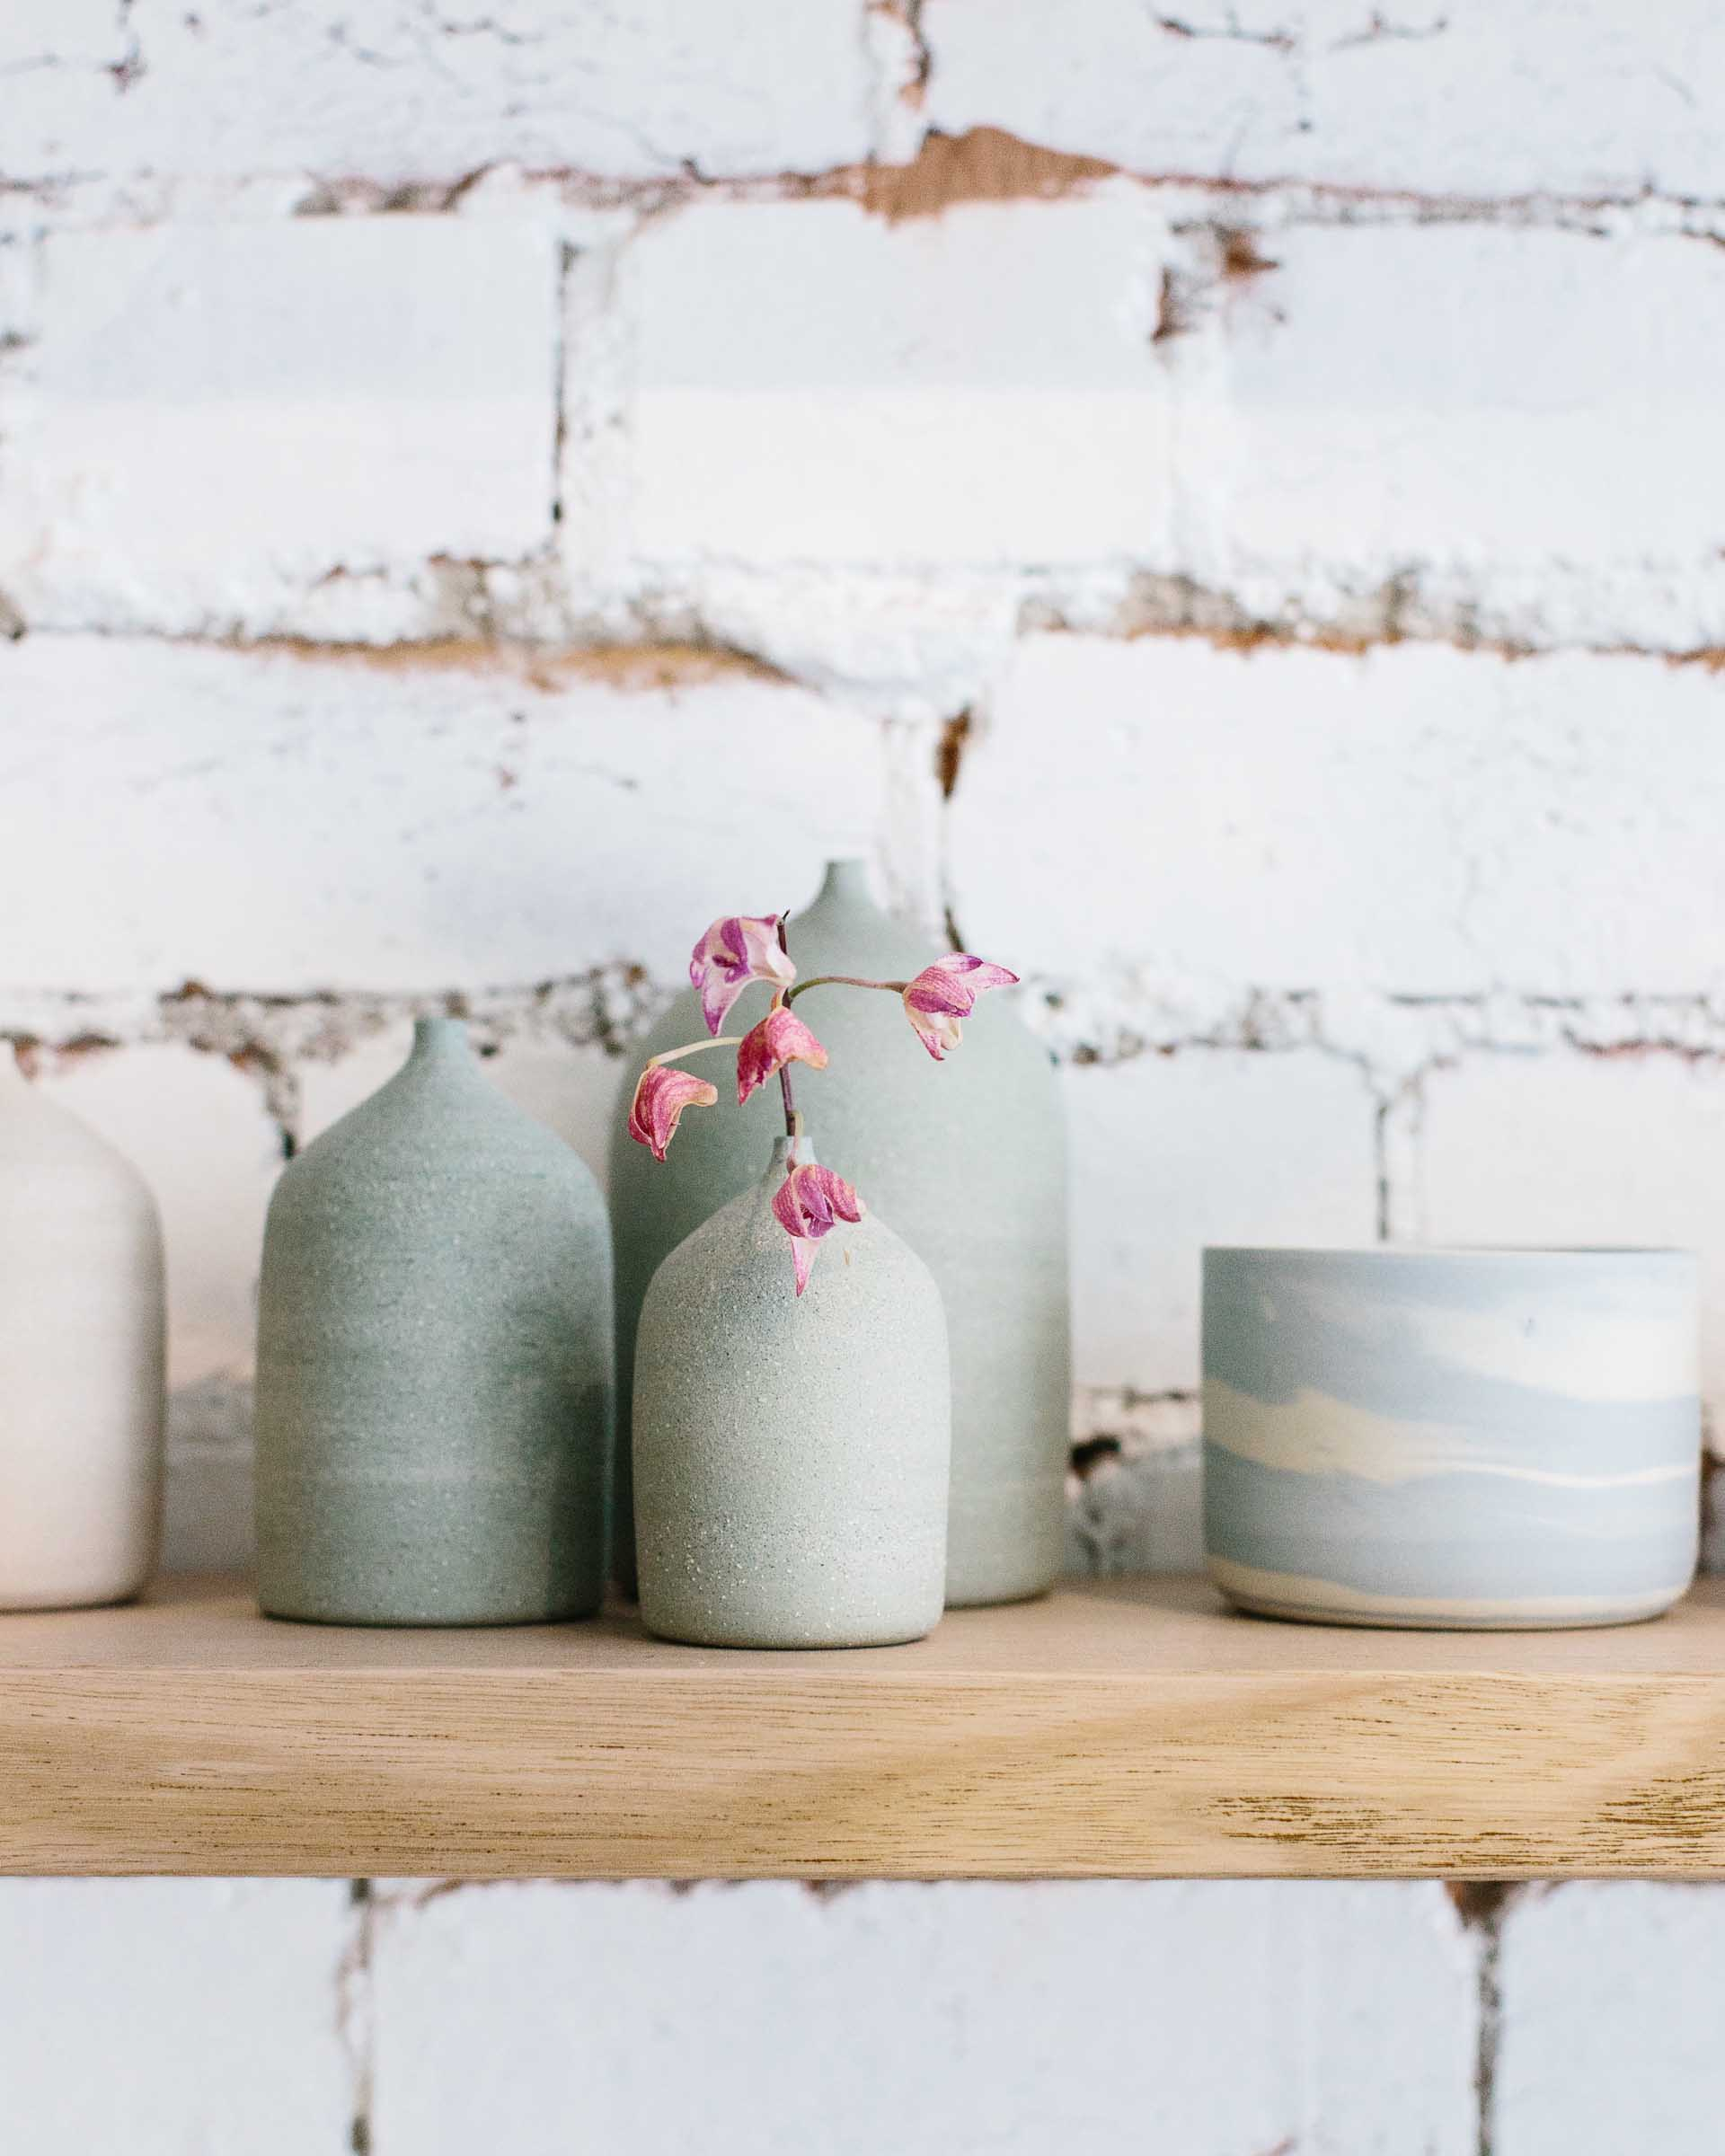 Bud vases by local Melbourne ceramicist in pastel blues